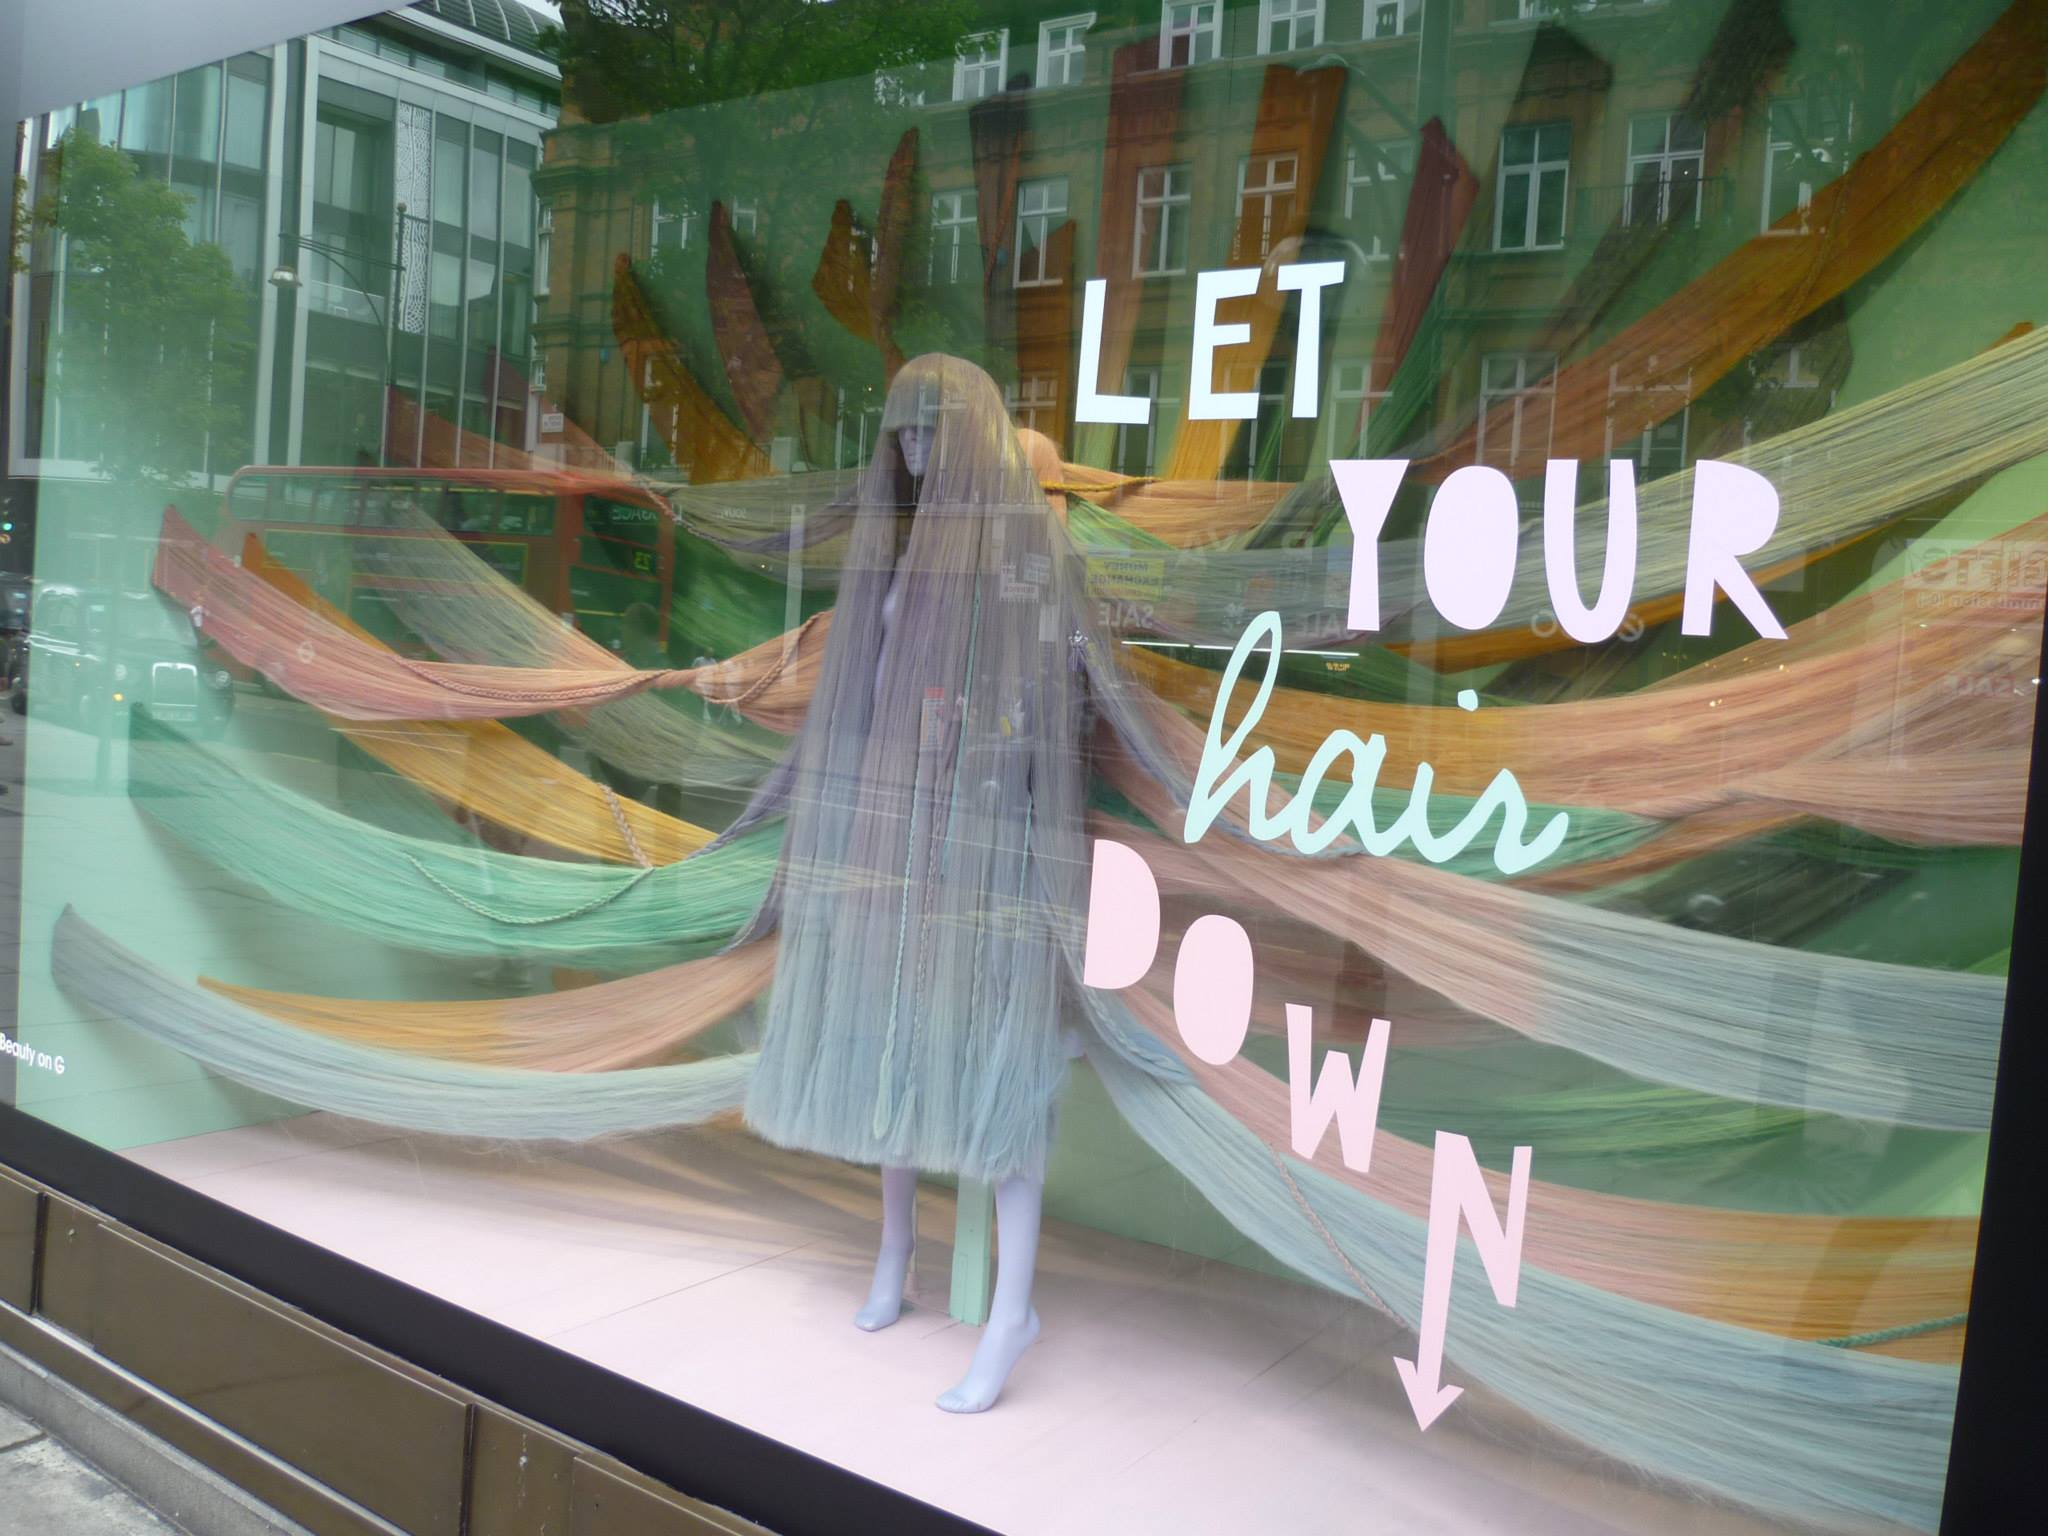 selfridges-hello-beautiful-let-your-hair-down